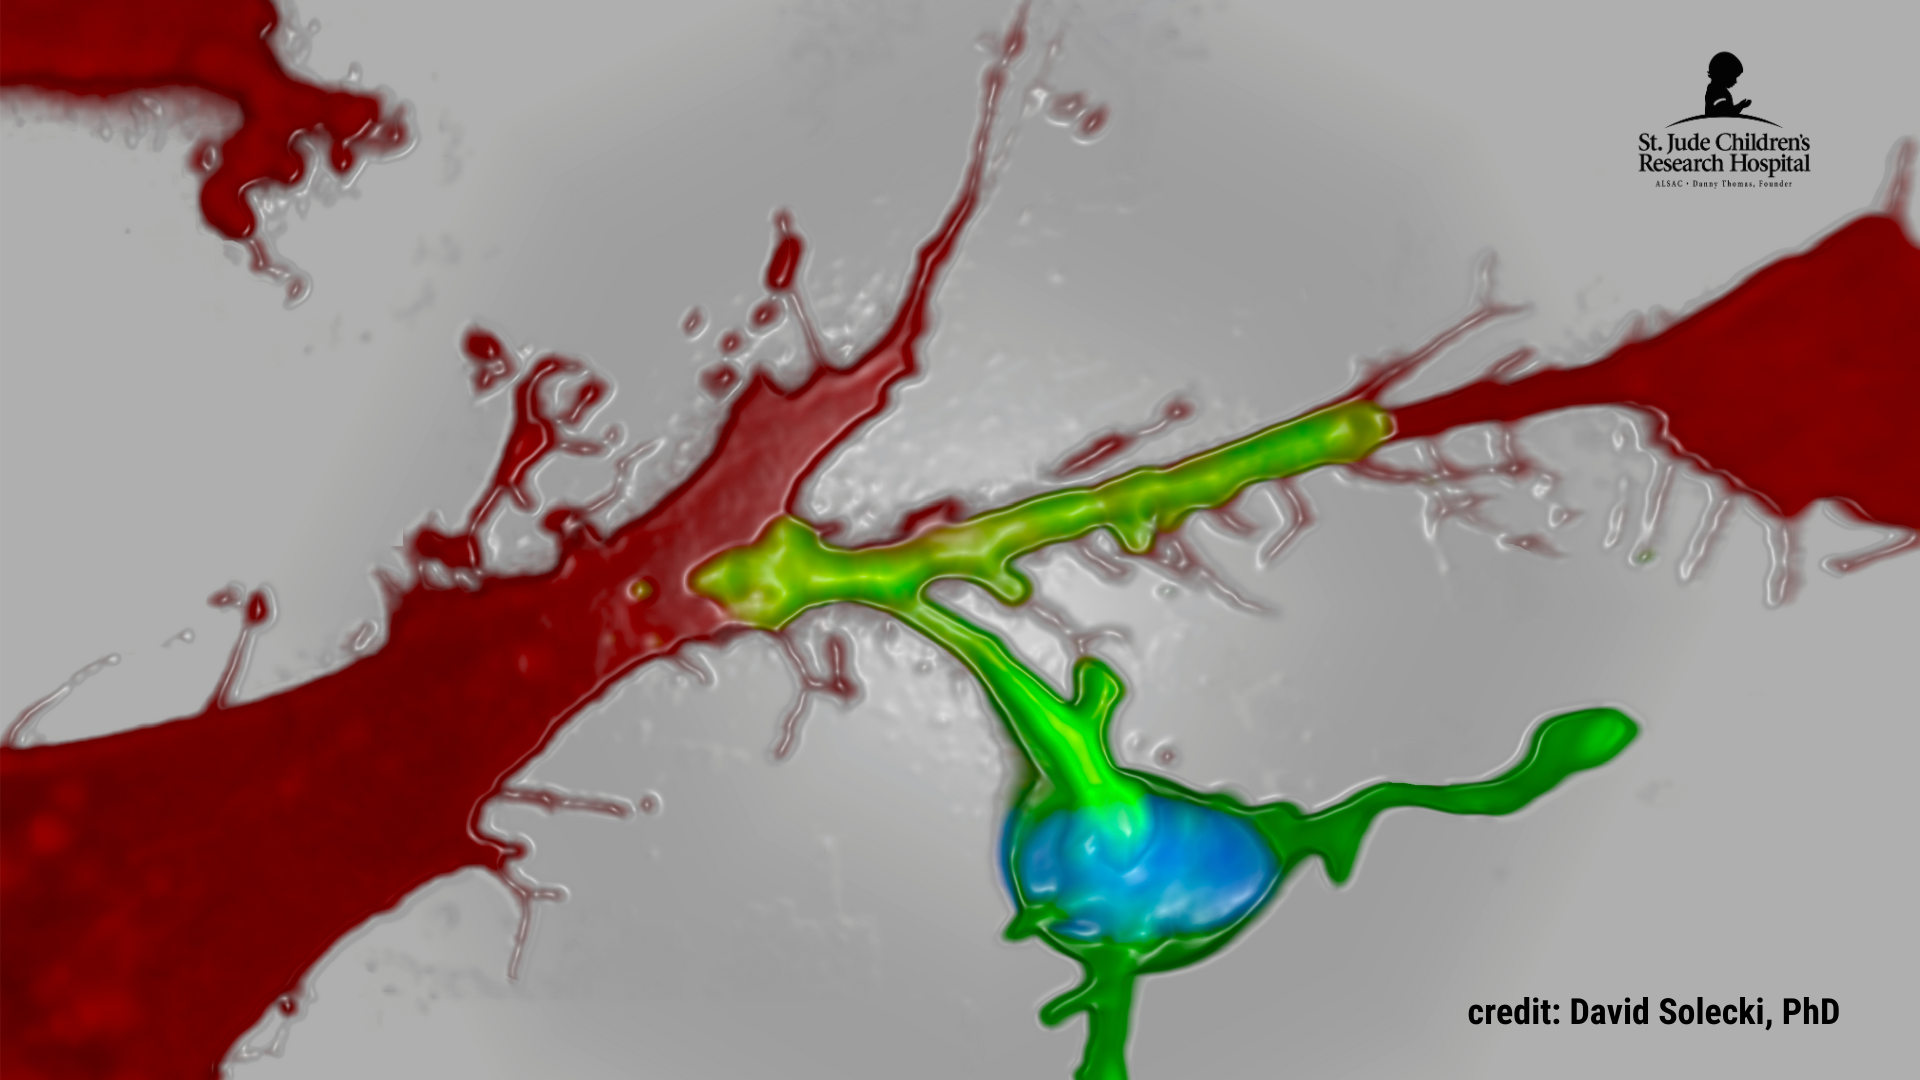 3D rendering by David Solecki, PhD, of a cerebellar granule neuron (green cell with blue nucleus) binding to a cerebellar glial cell (red)